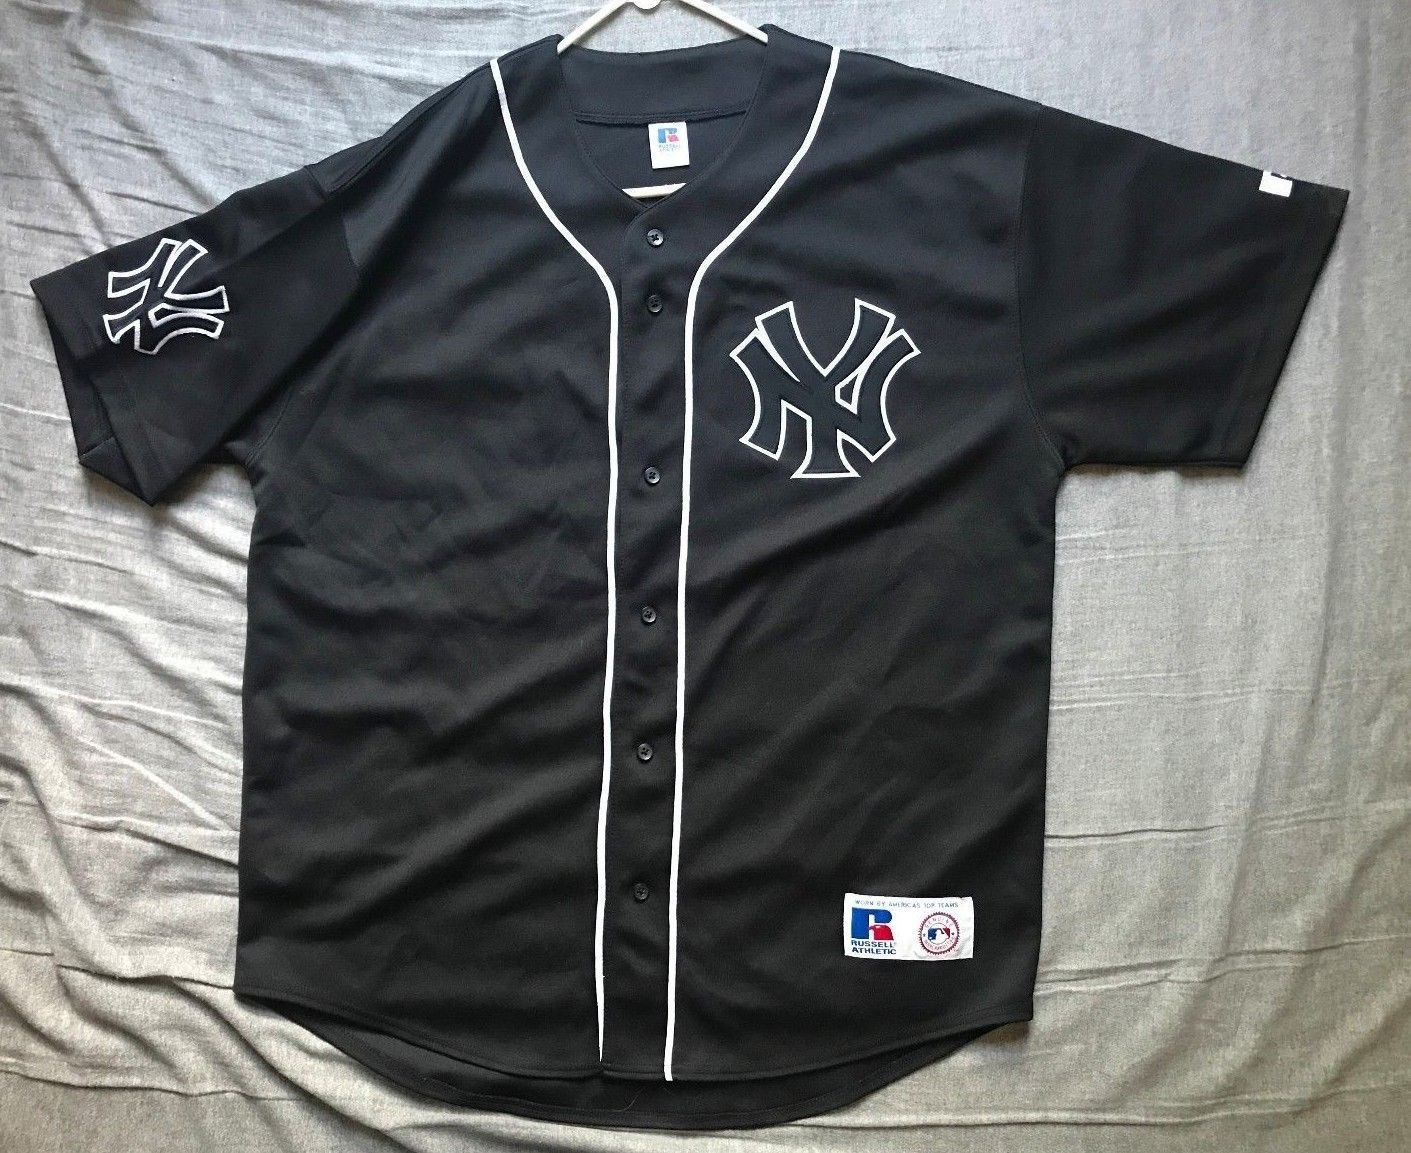 b986d6dec6a Men's Russell Athletic MLB New York Yankees black jersey size XL ...